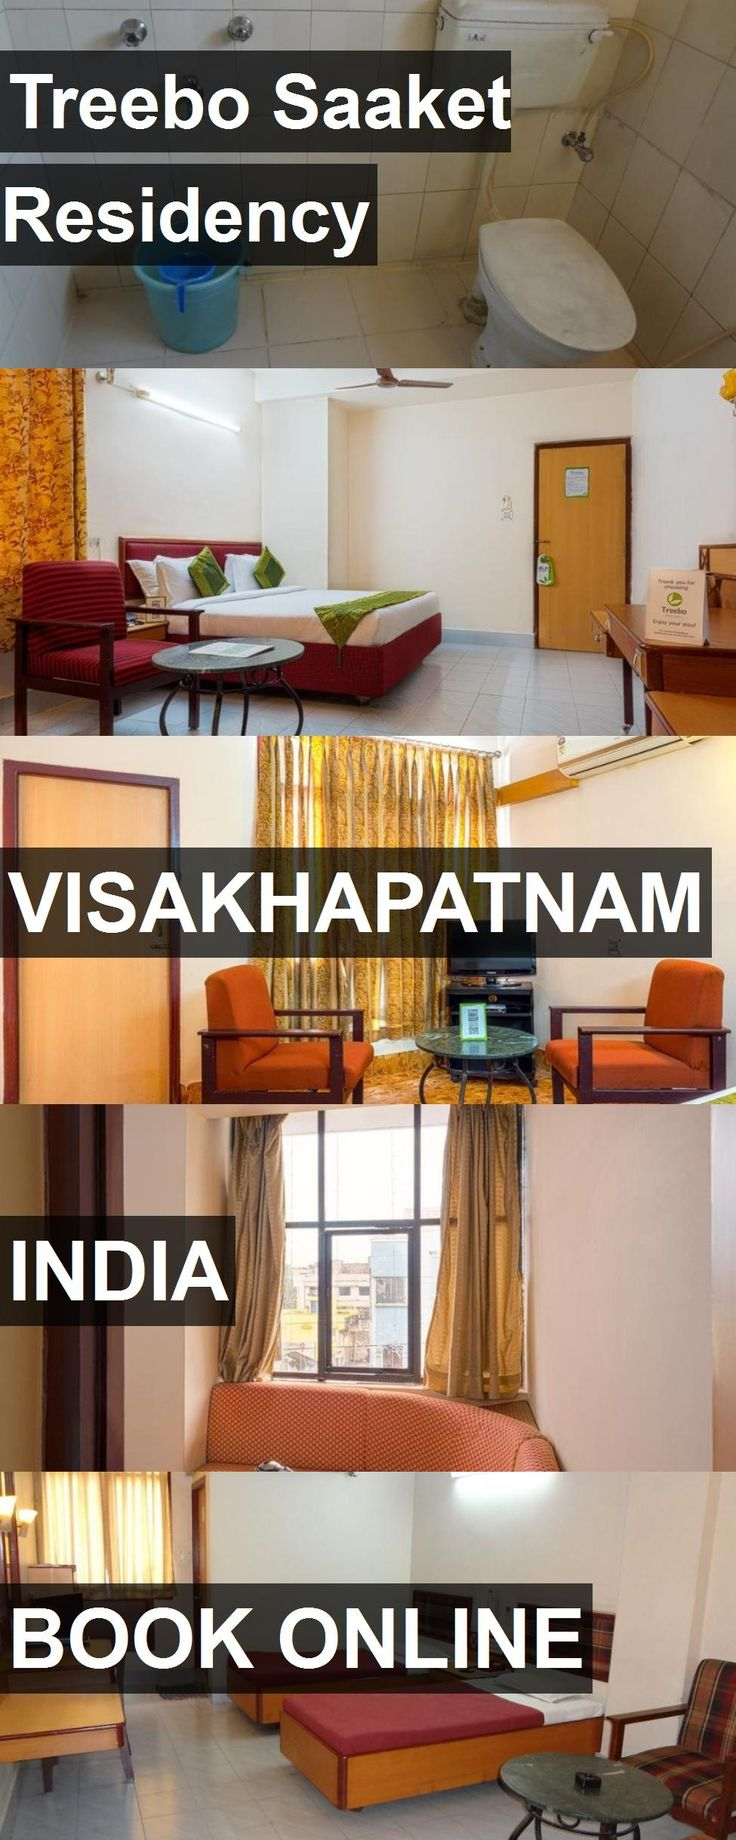 Hotel Treebo Saaket Residency in Visakhapatnam, India. For more information, photos, reviews and best prices please follow the link. #India #Visakhapatnam #travel #vacation #hotel